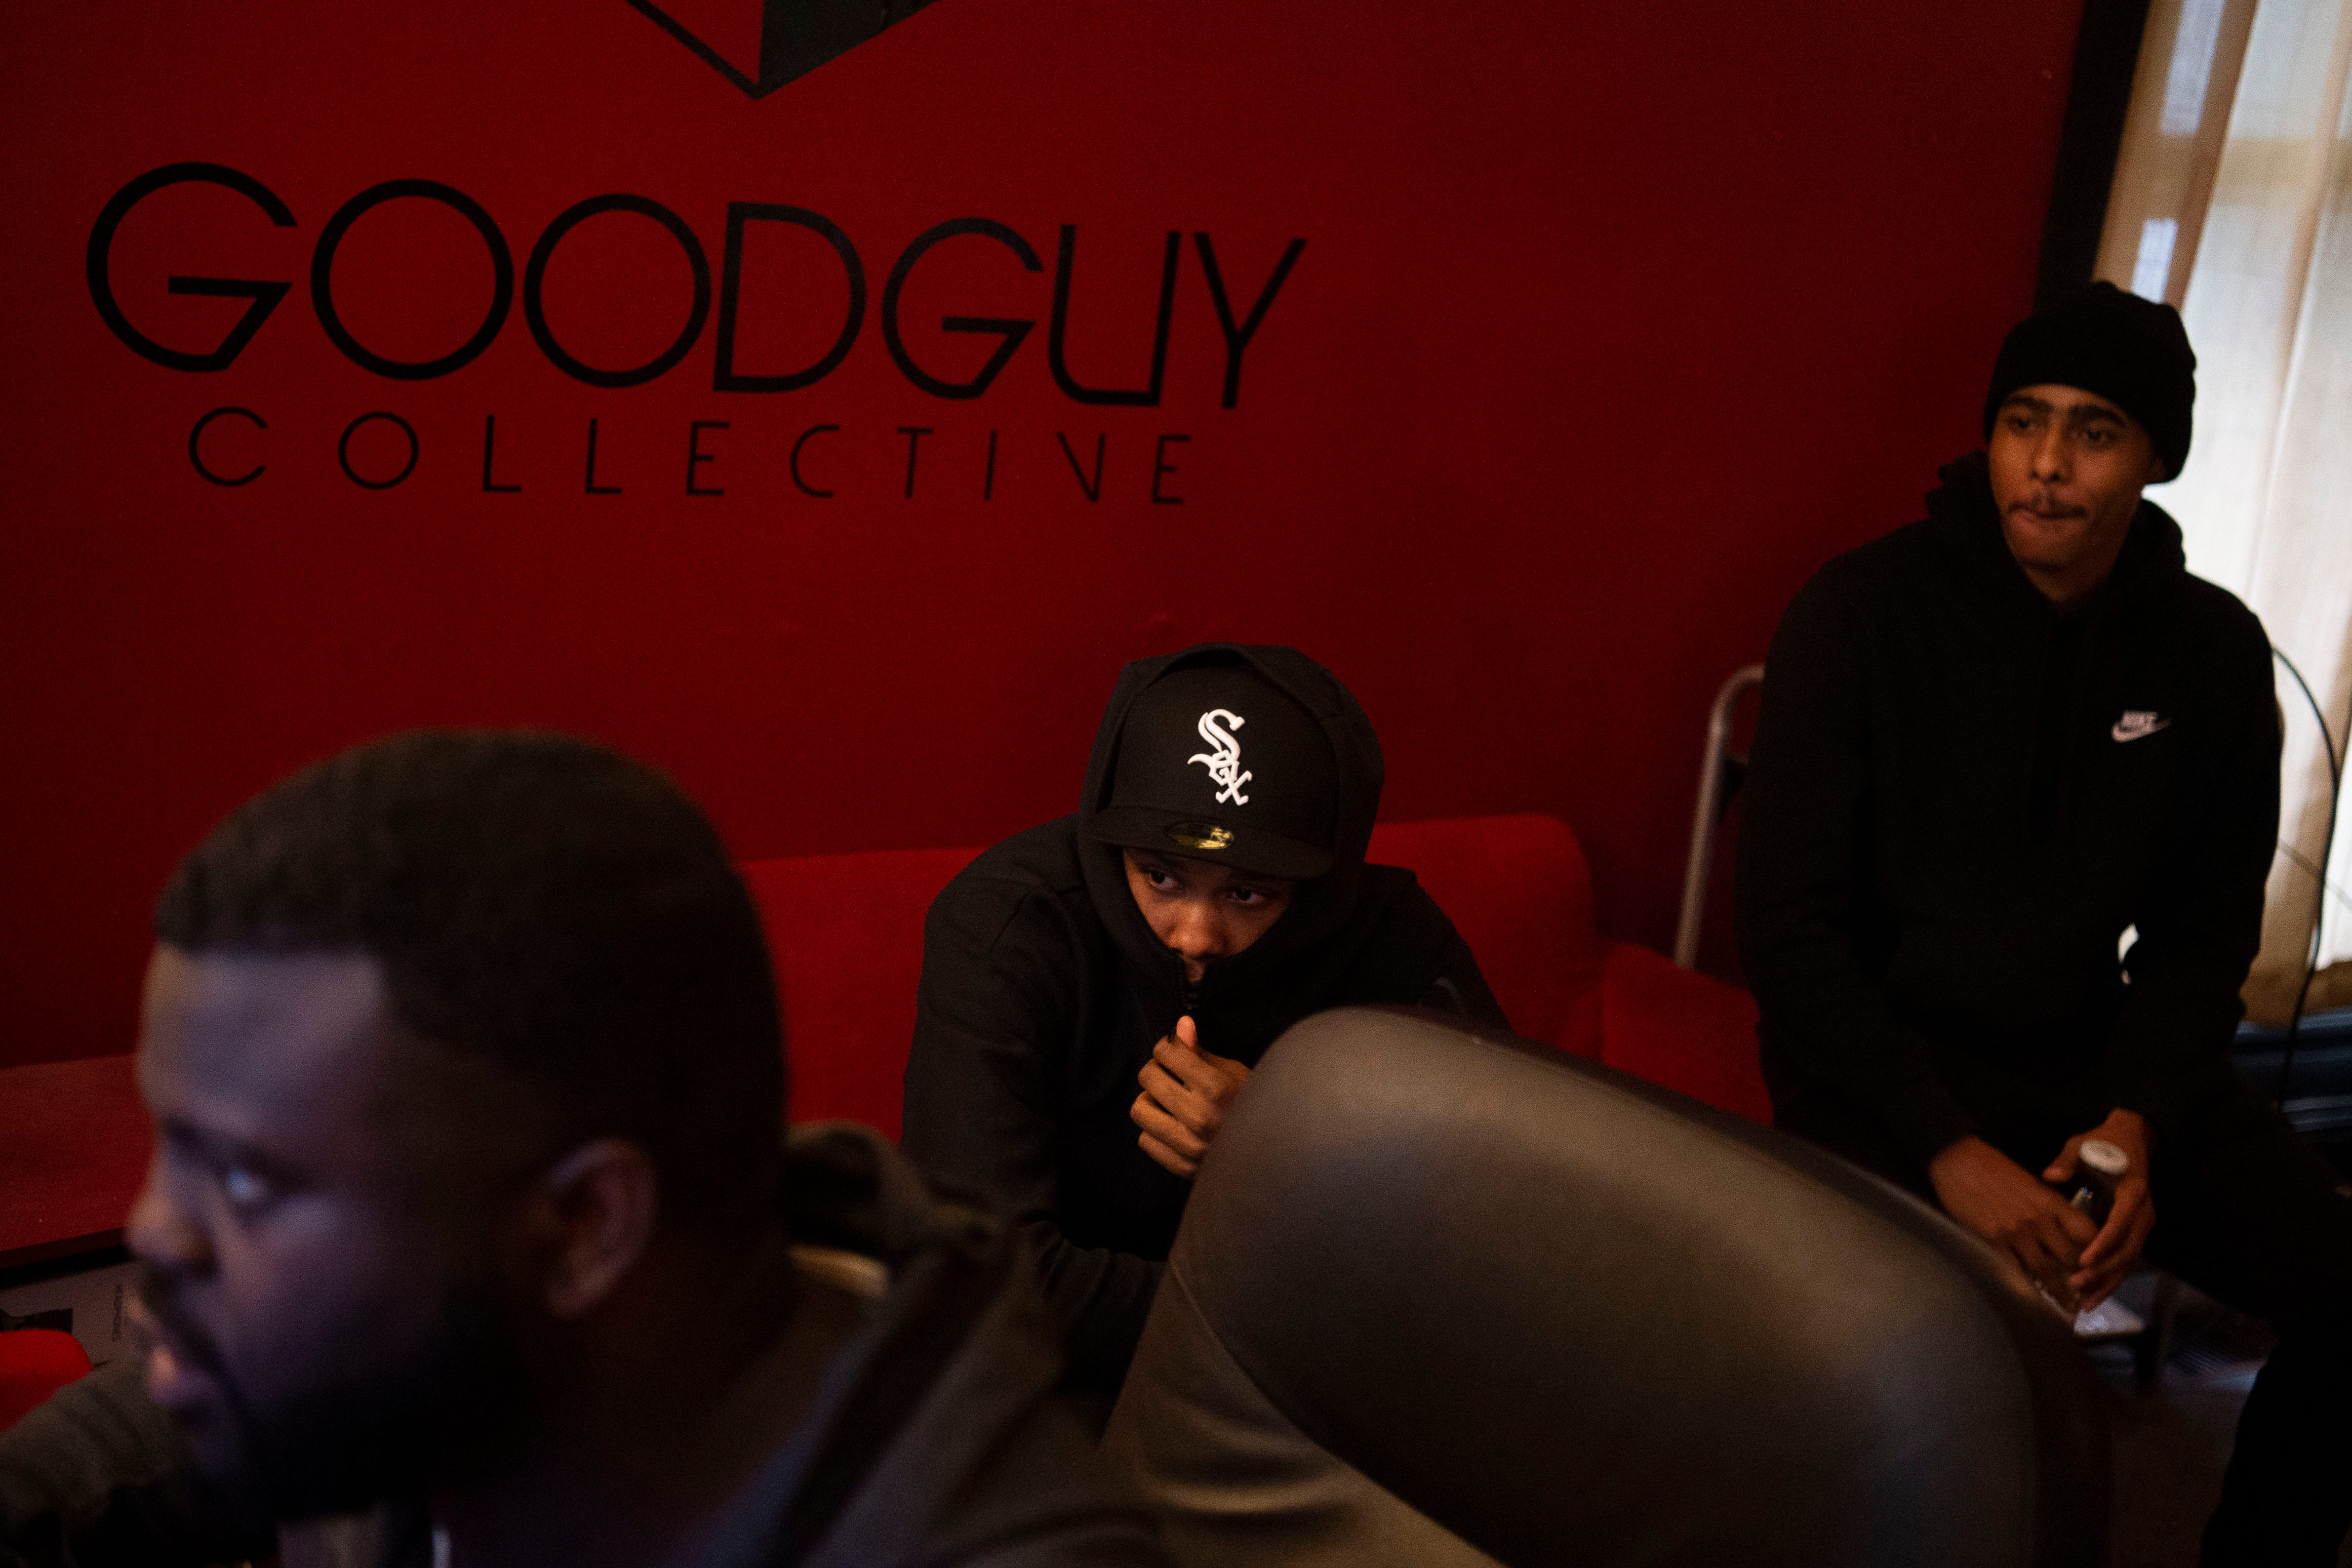 Jarius Bush, left, works with rappers Terrence Price, aka TP, center, and Ashante Price, aka Swoo, during a recording session in the Good Guy Collective space at the Birdhouse in Knoxville, Tenn. on Friday, Feb. 26, 2021.